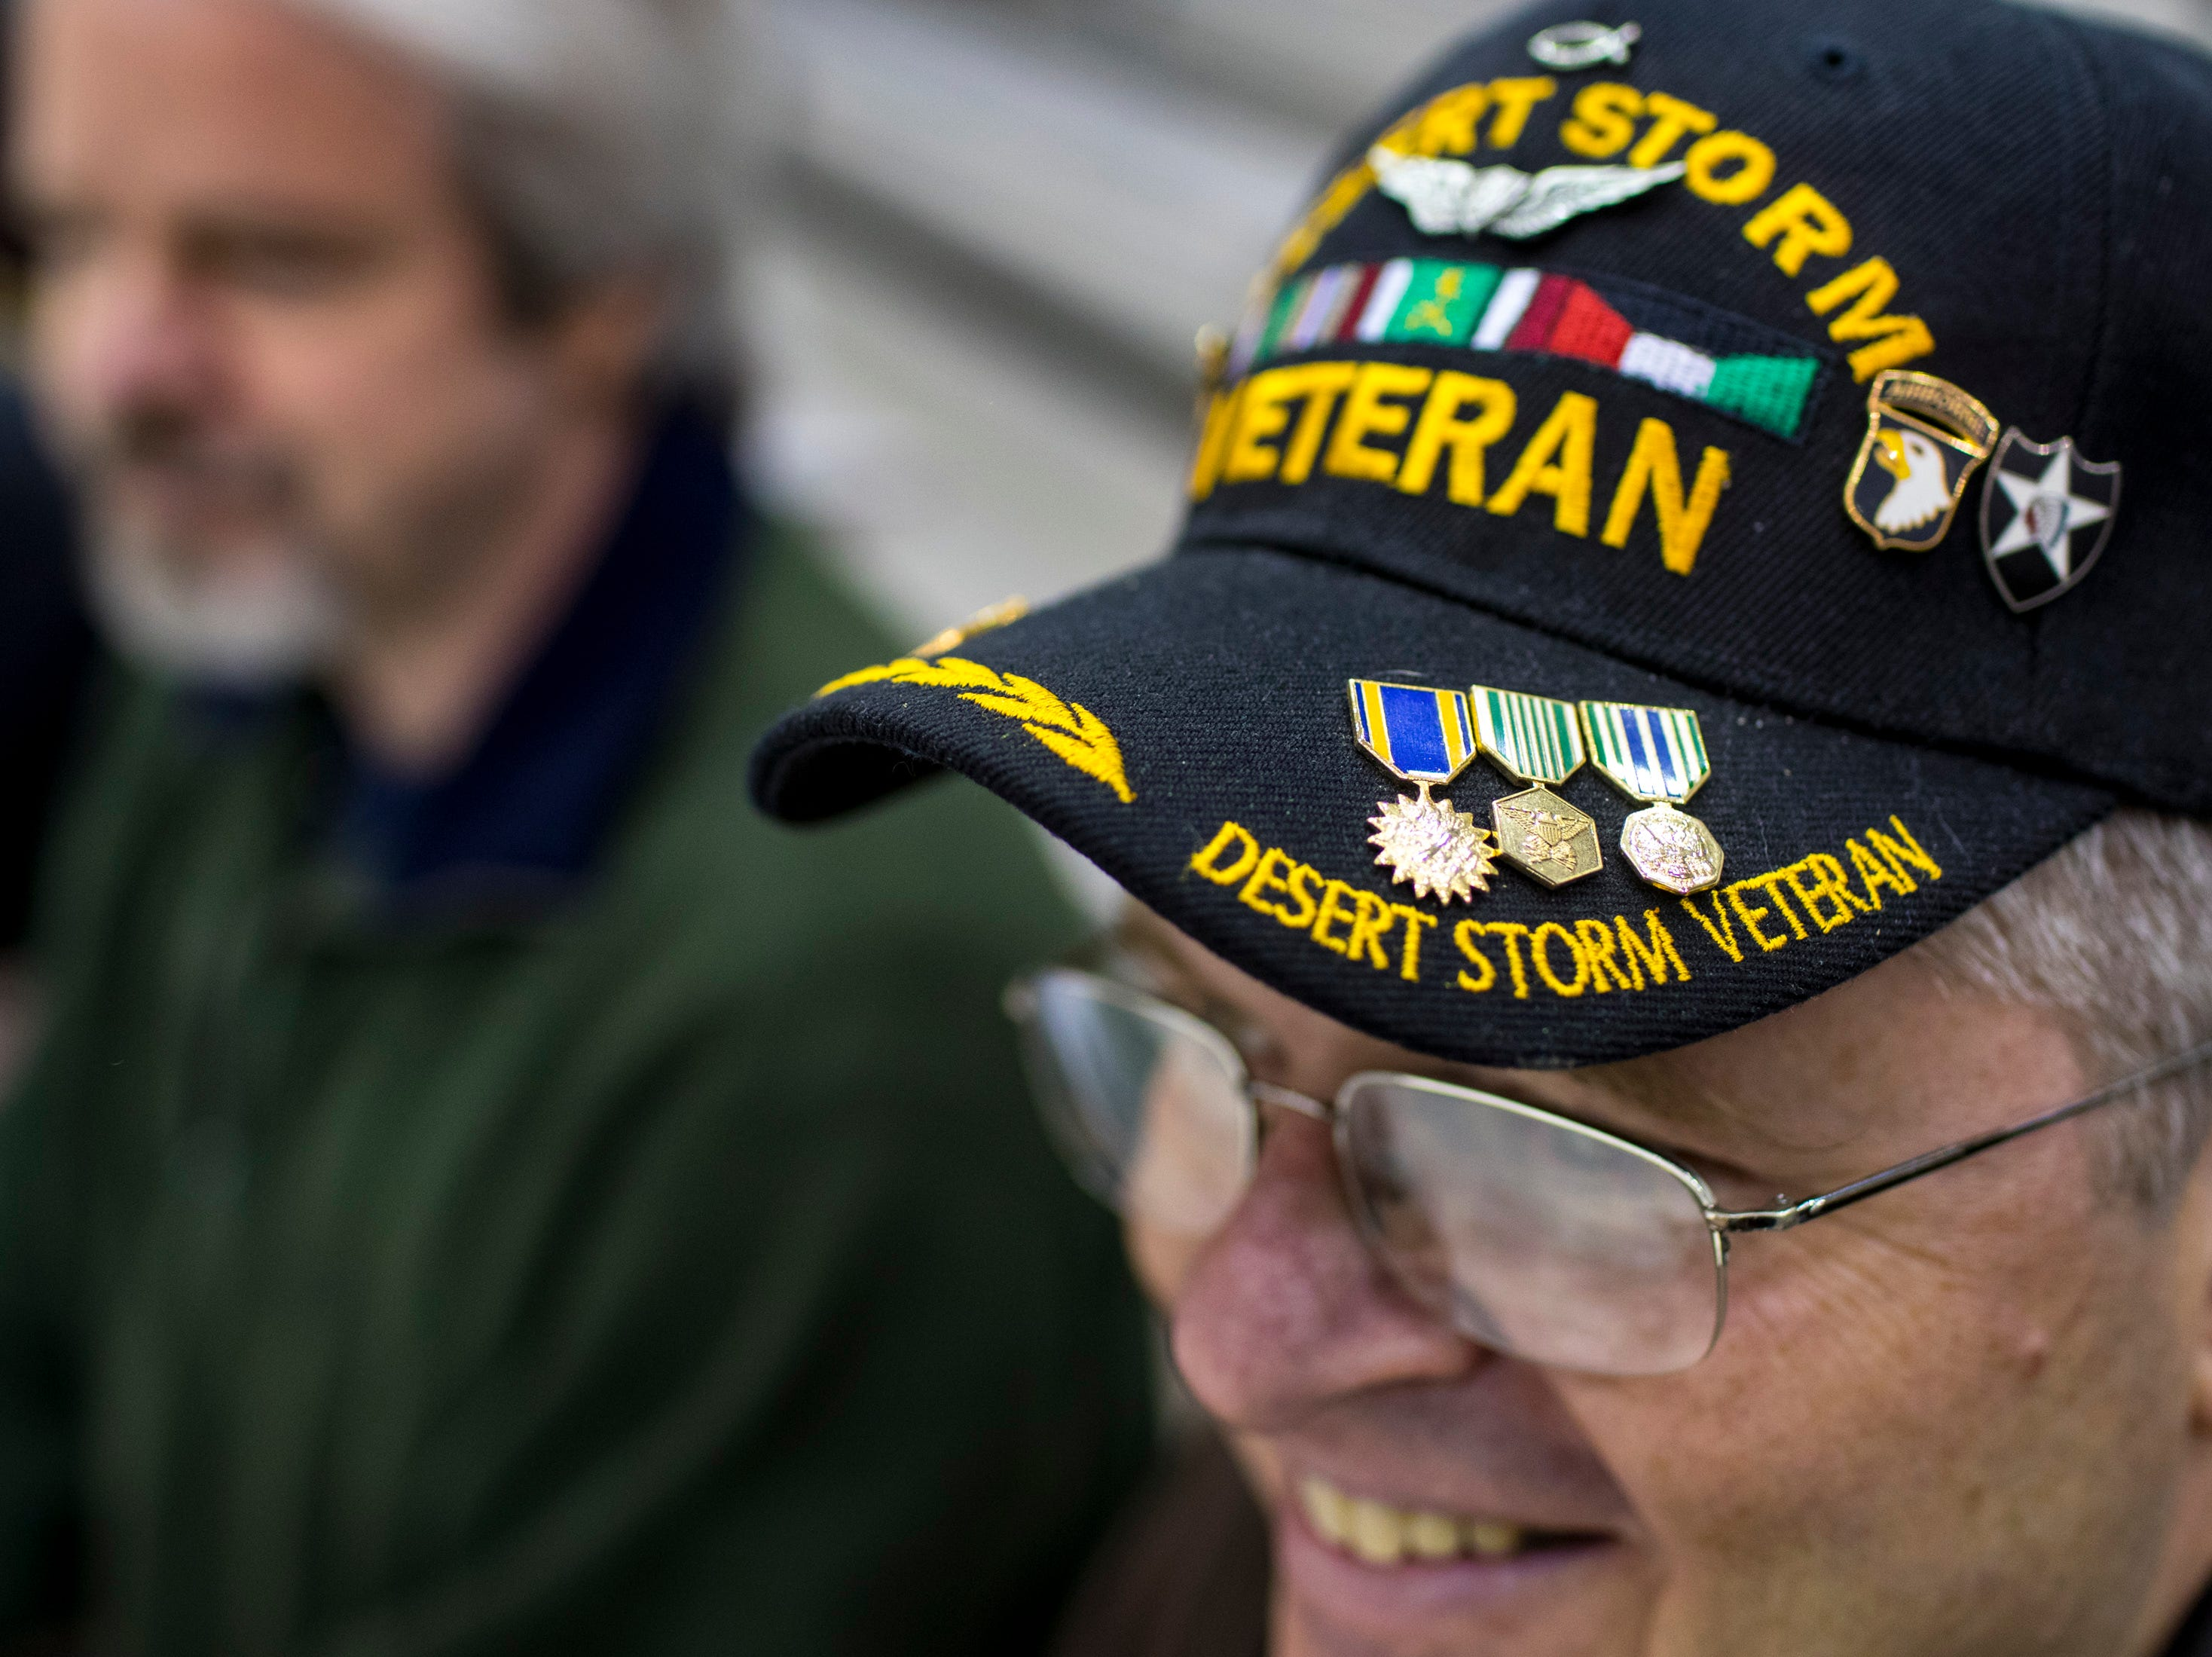 Olaf Marek wears a Desert Storm veteran hat while waiting for his nephew, 2nd Lt. Nick Marek to arrive during the welcome home ceremony for the 2nd Battalion, 44th Air Defense Artillery Regiment and 101st Airborne Division at Fort Campbell in the early hours of Monday, Nov. 19, 2018. The soldiers were returning from a 9-month deployment in Afghanistan.